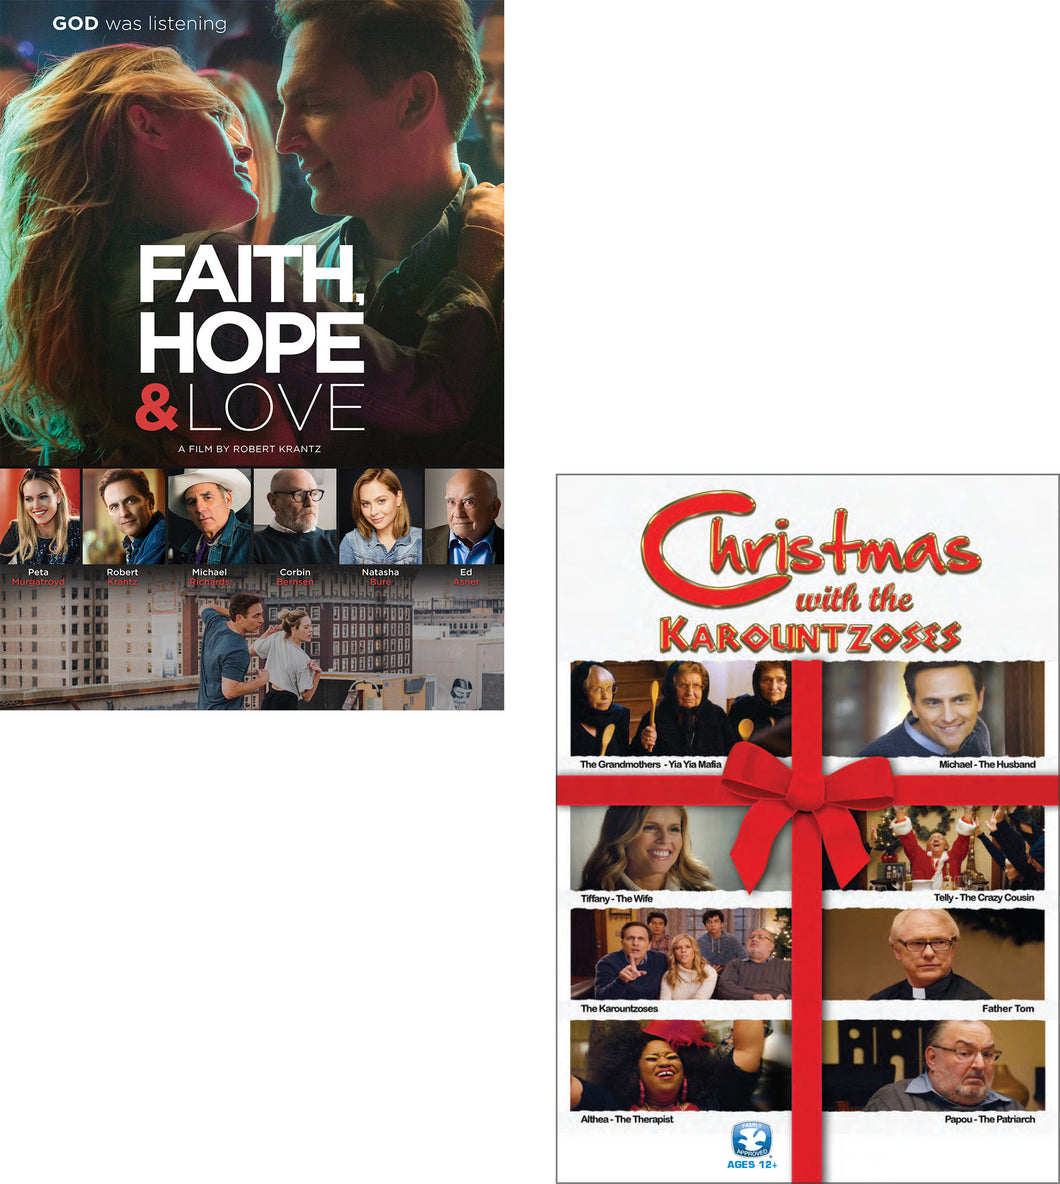 Faith, Hope & Love / Christmas With The Karountzoses - DVD 2-Pack